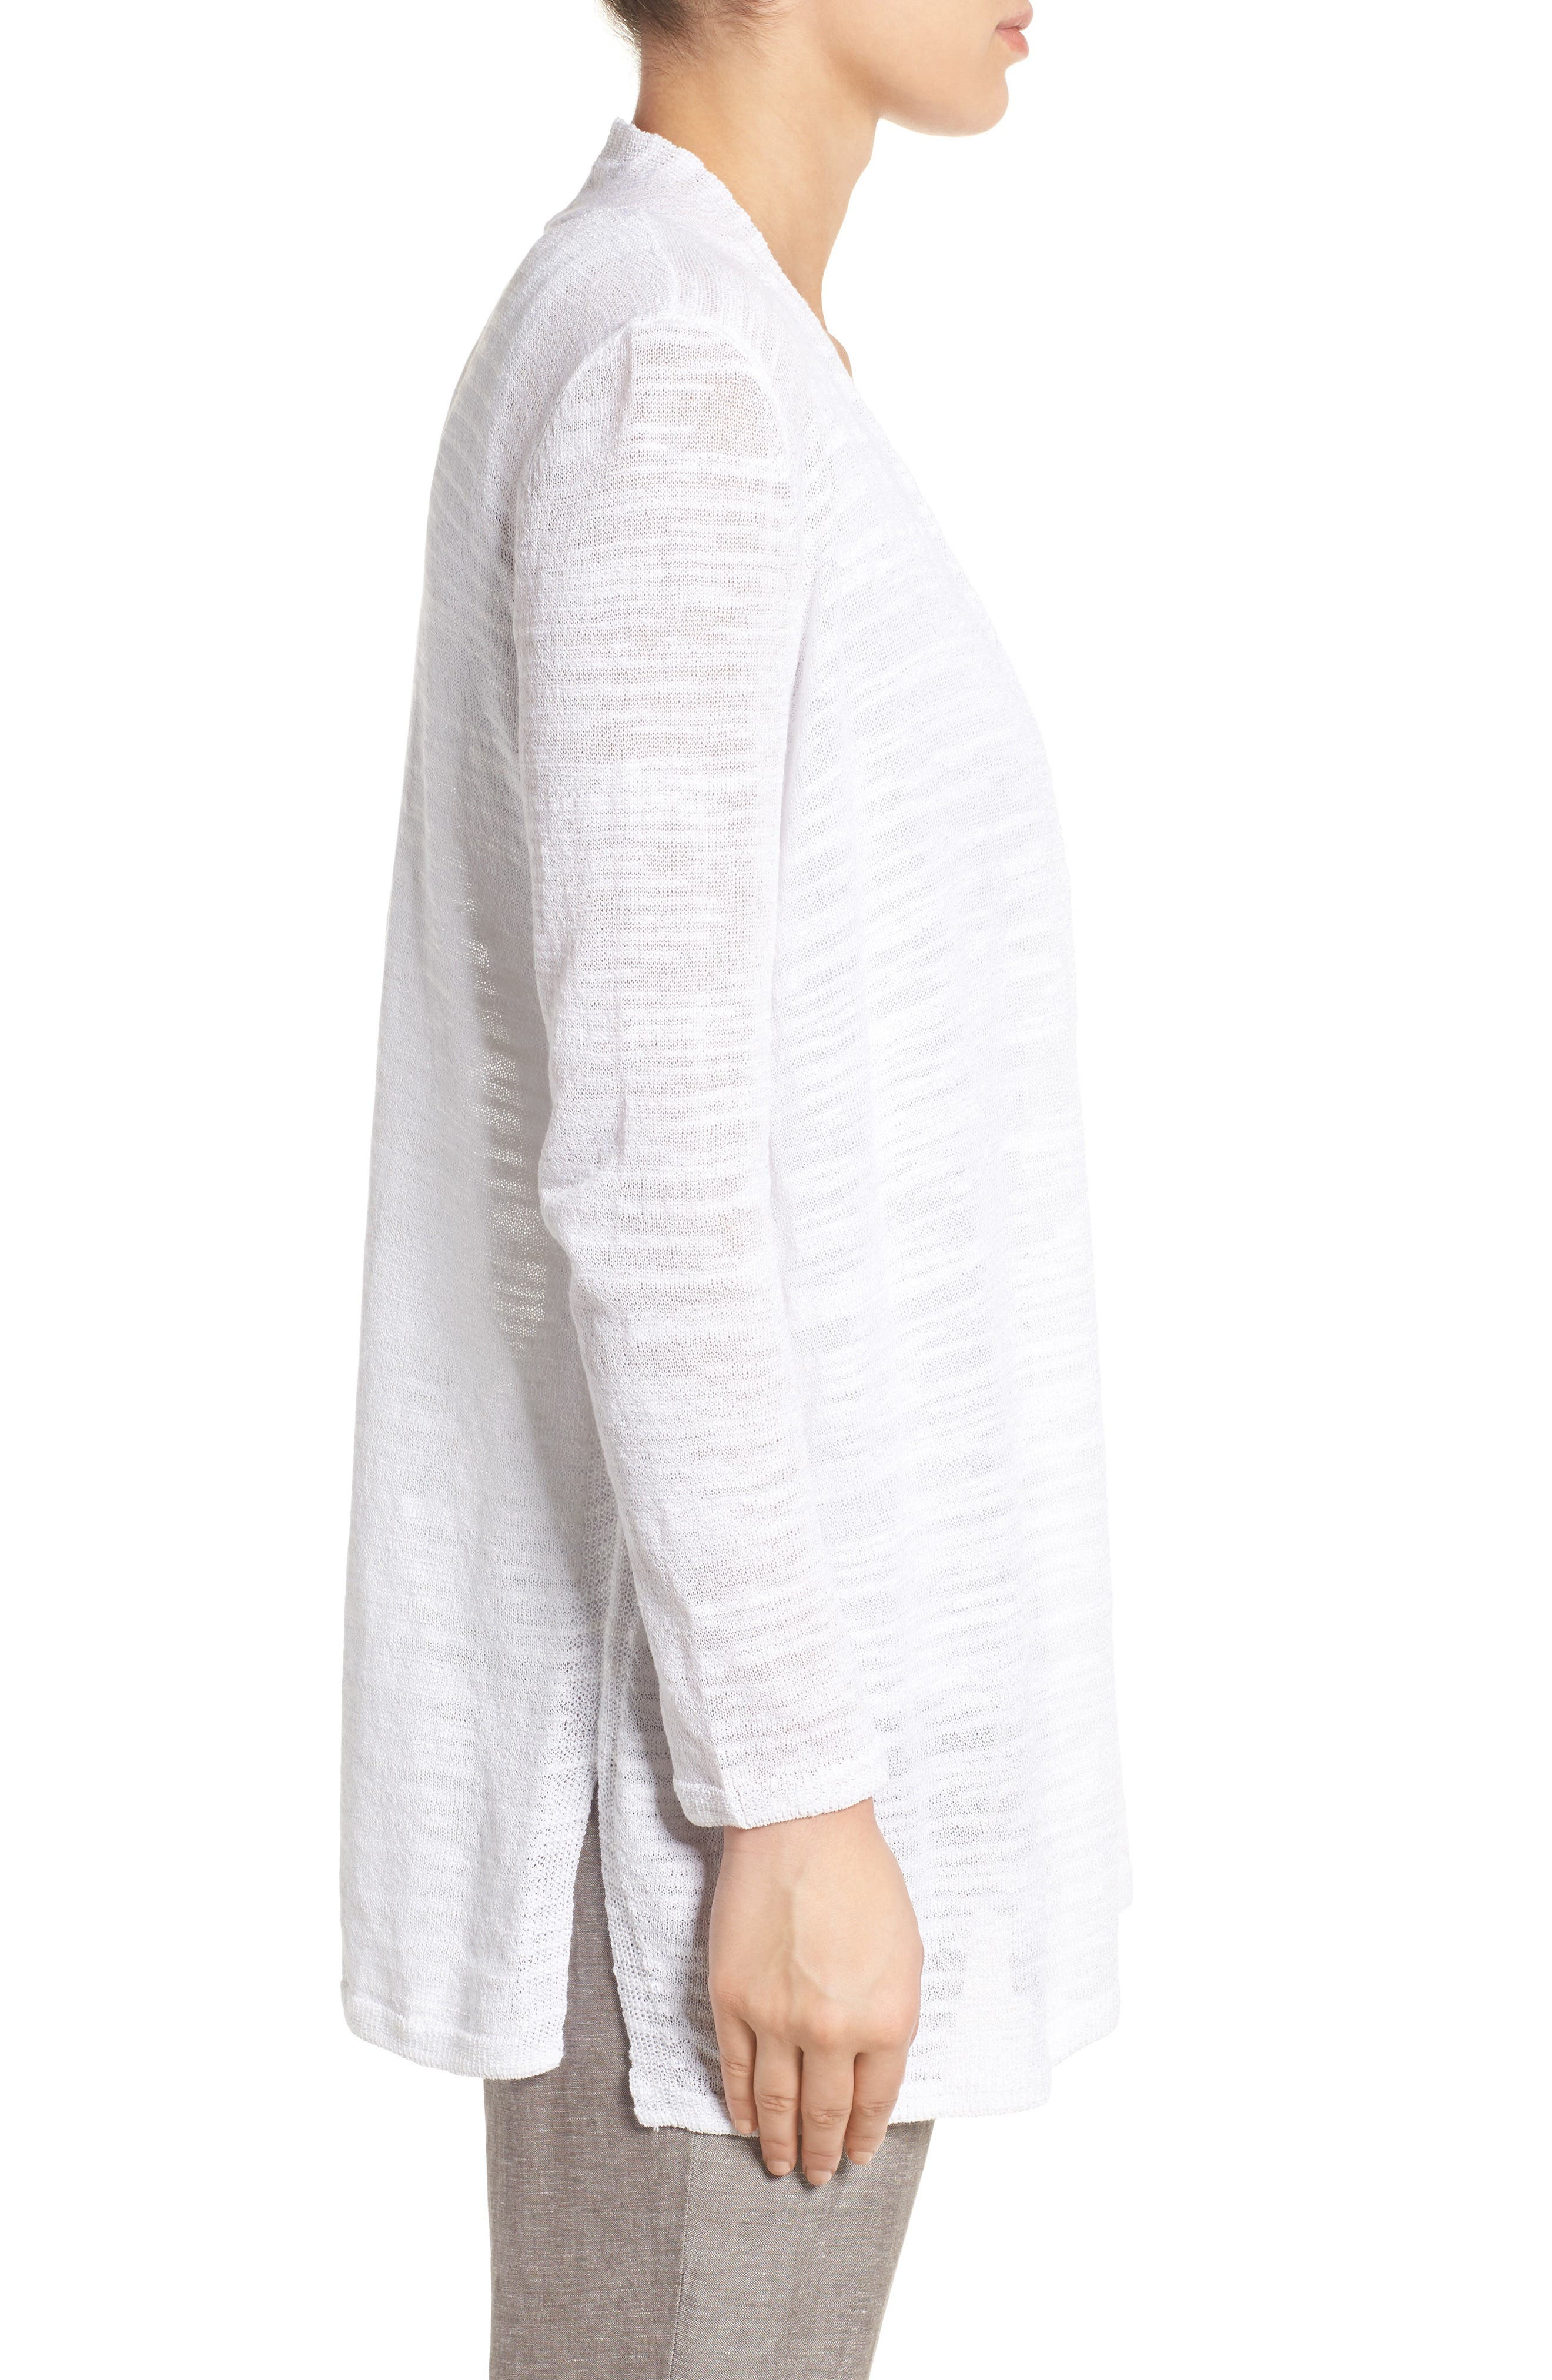 Alternate Image 3  - NIC+ZOE Islet Slub Knit Cardigan (Regular & Petite)